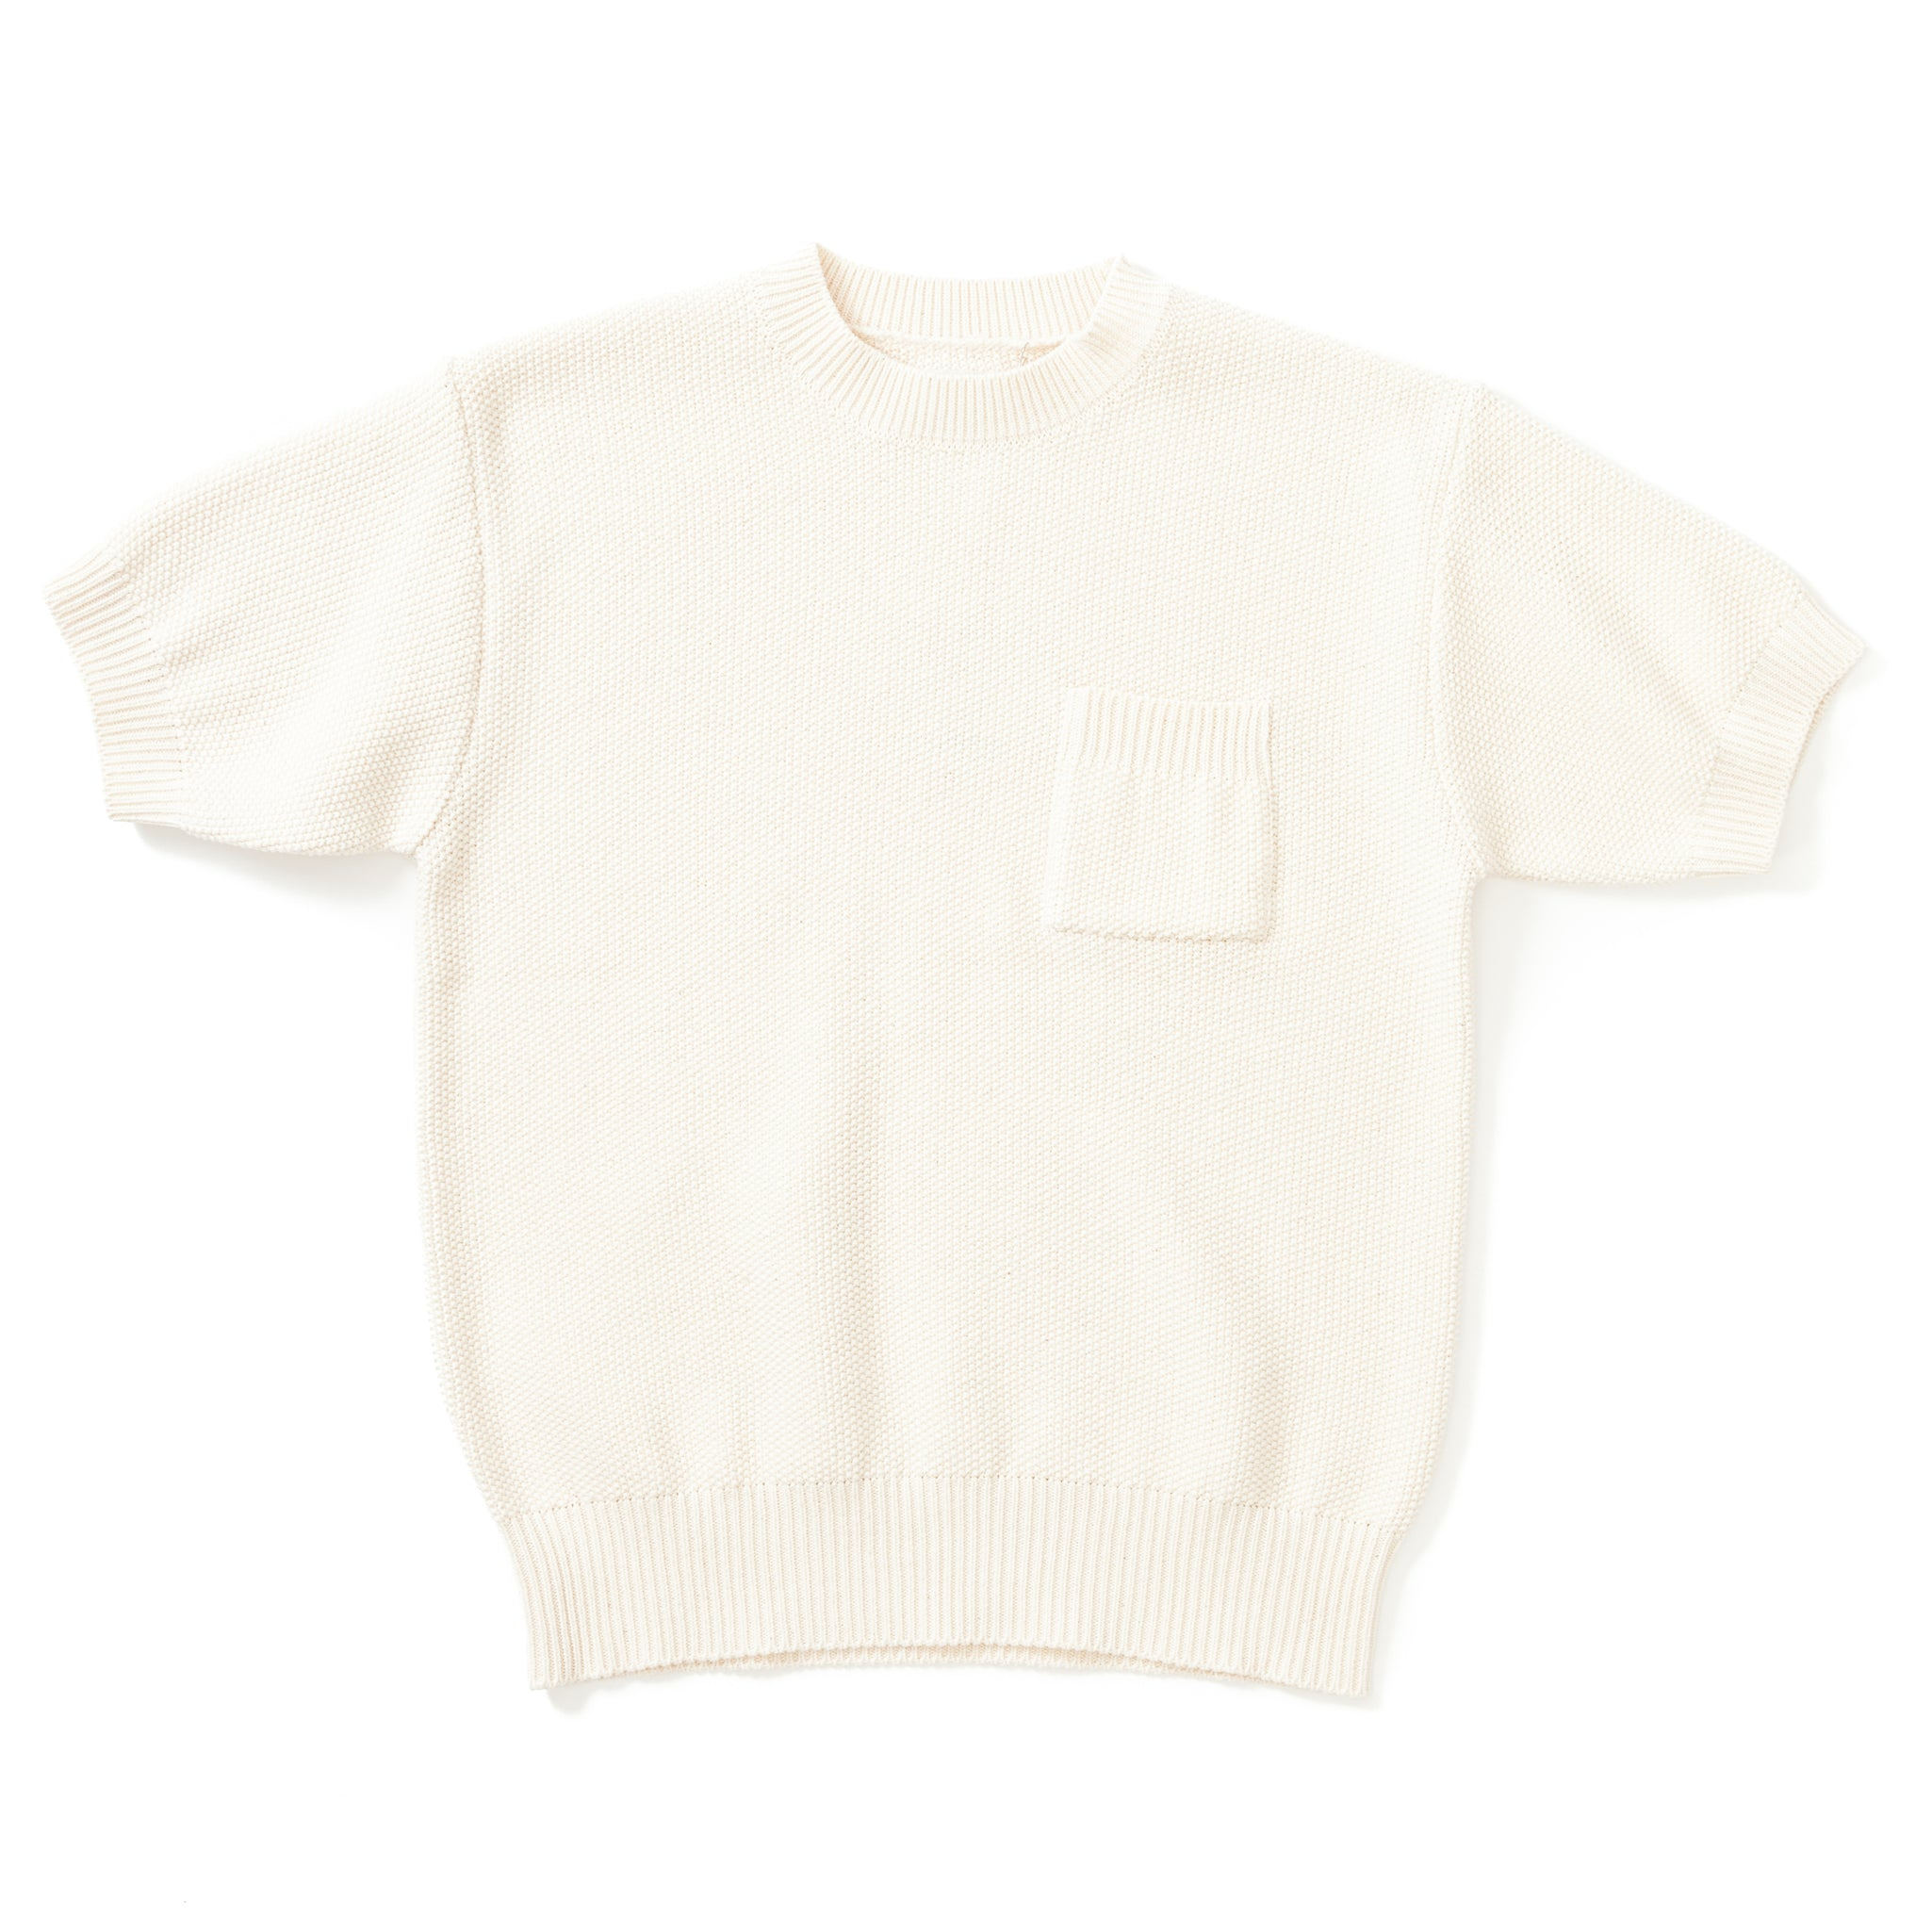 Cotton Summer Knit Shirt